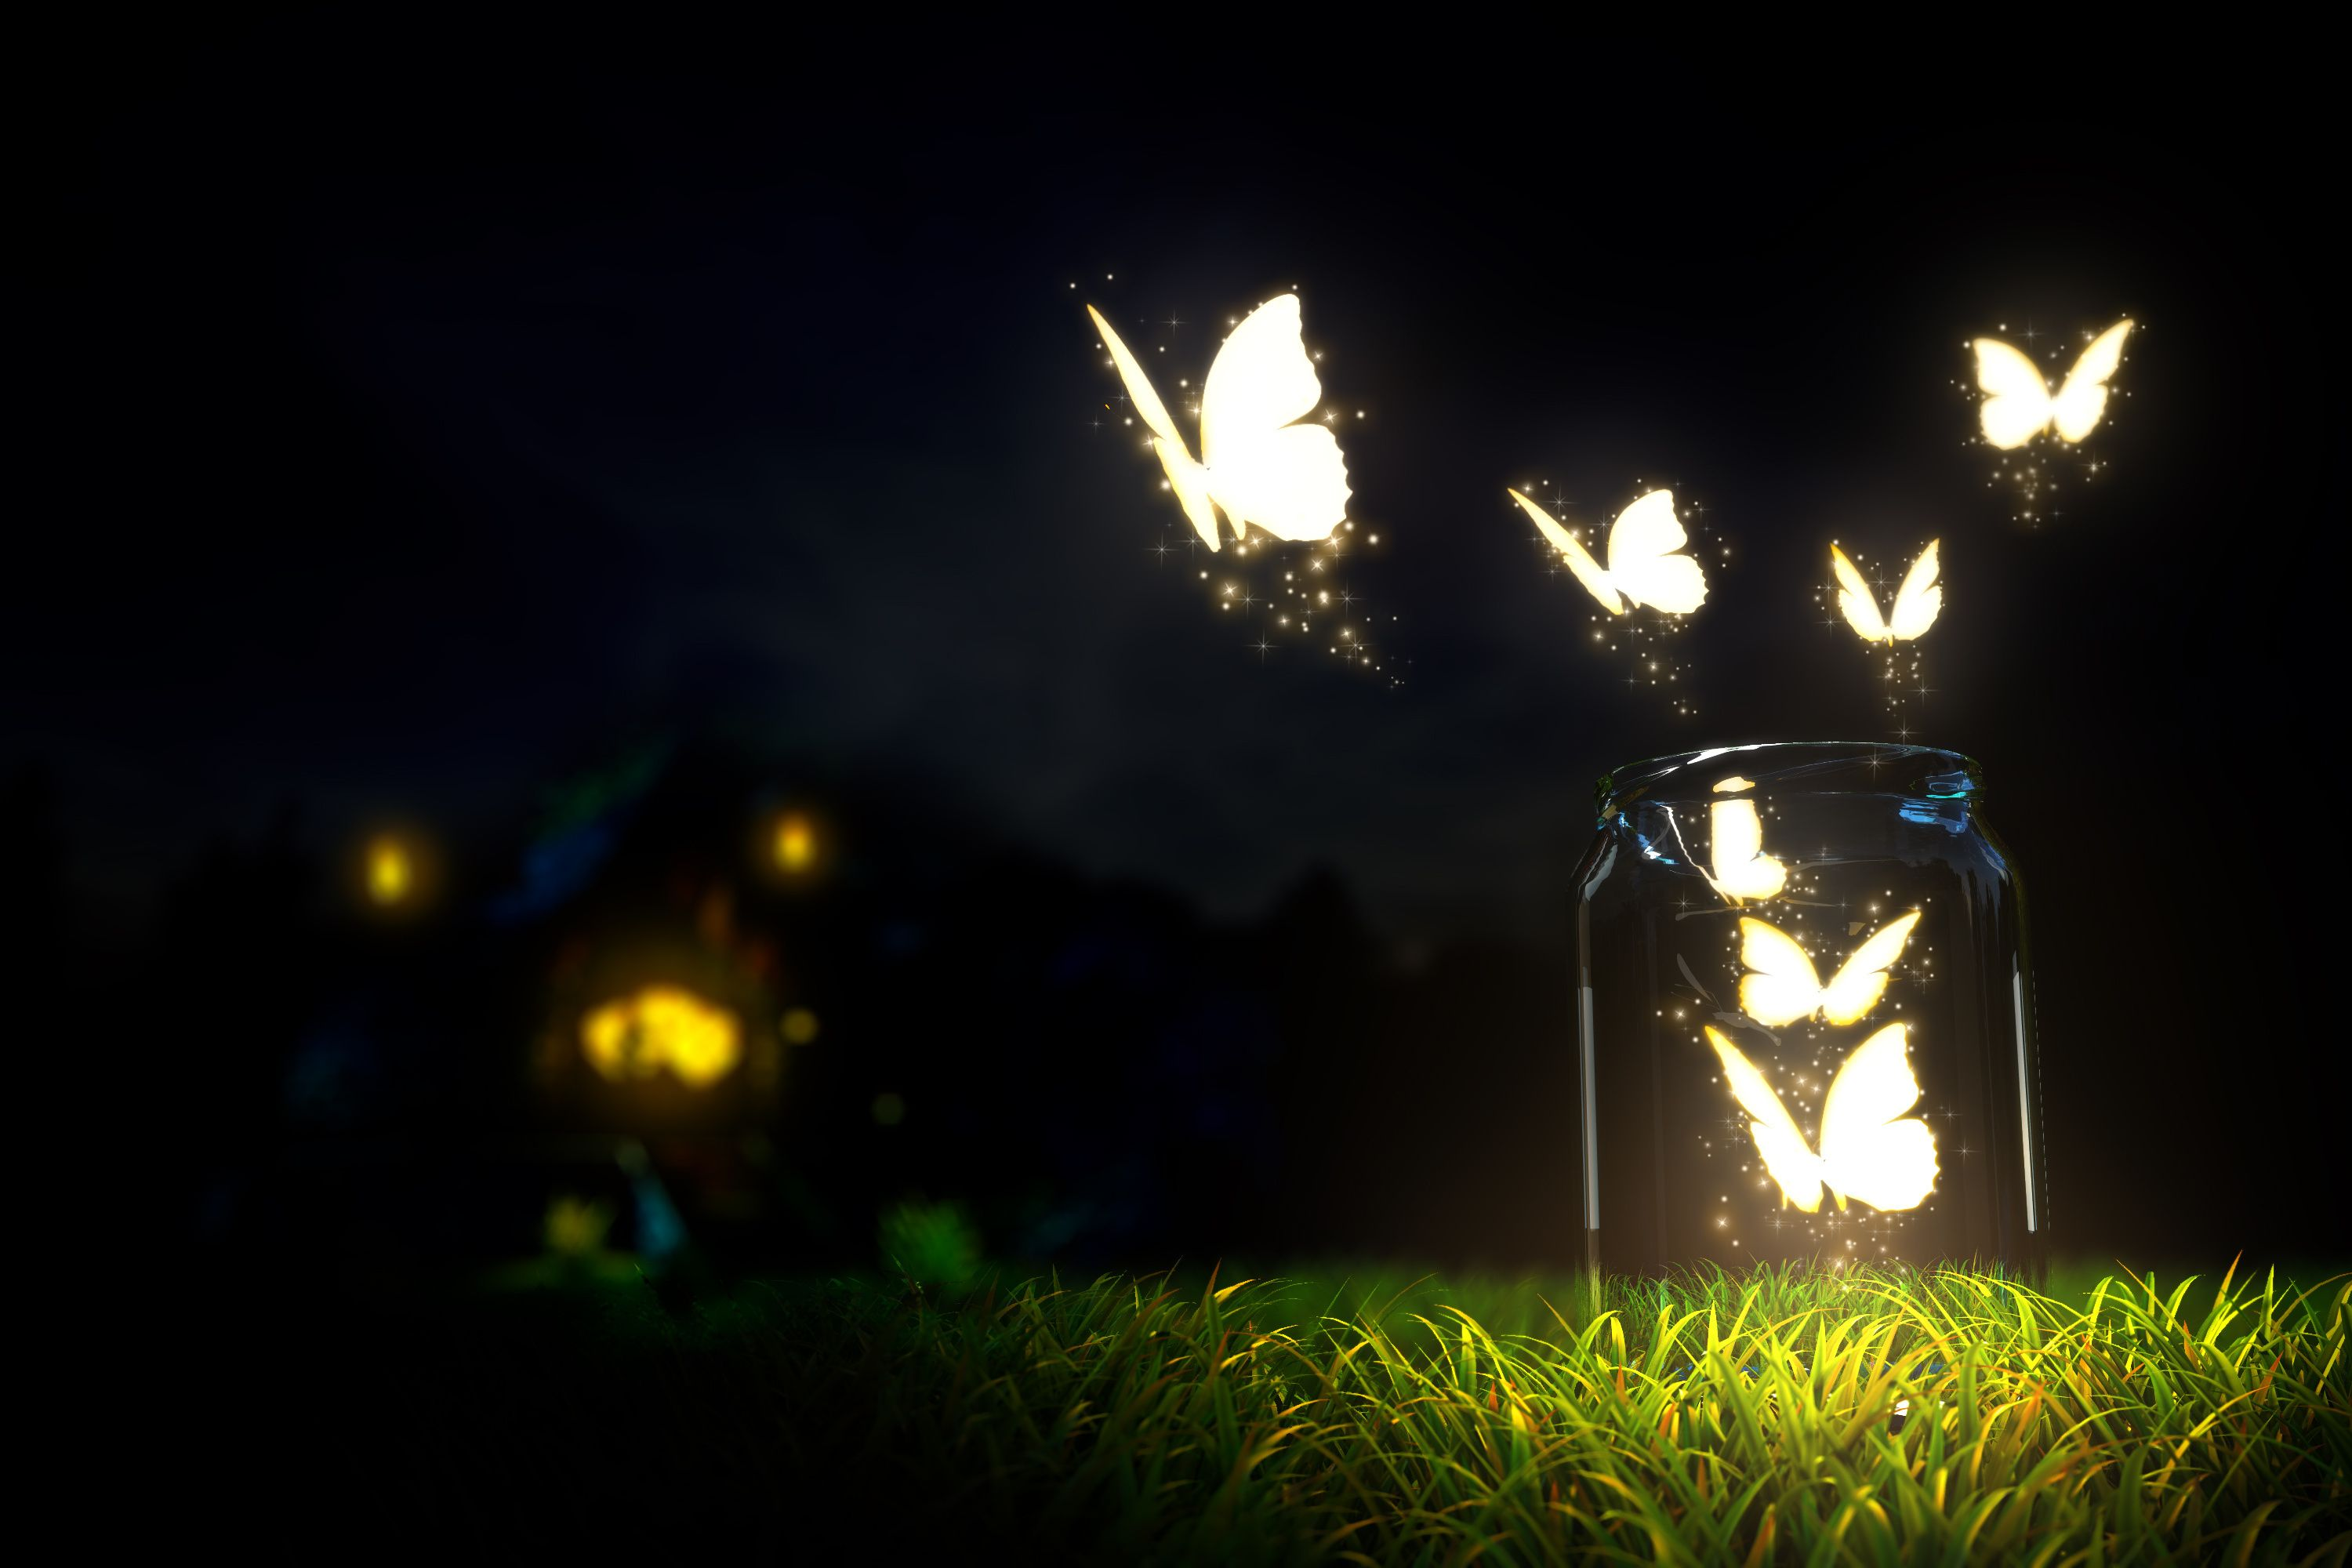 Glowing Butterfly Wallpaper HD Wallpaper Butterfly lighting 3000x2000